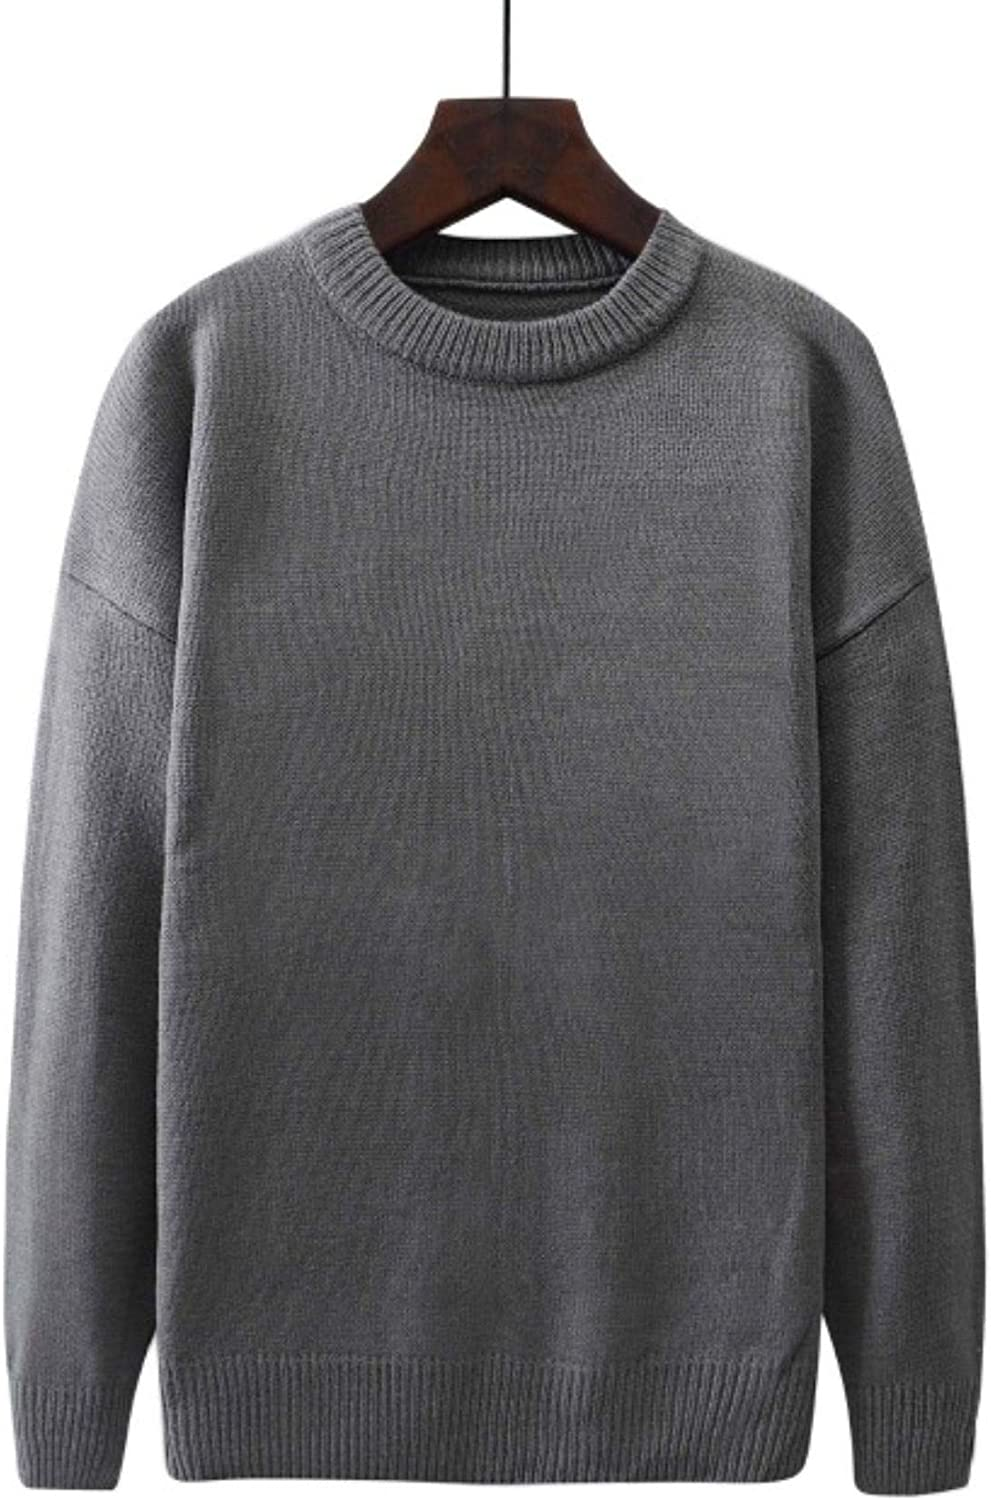 Winter New Plus Size Loose Knitted Autumn Cas Solid Don't miss the campaign Men Pullover All stores are sold